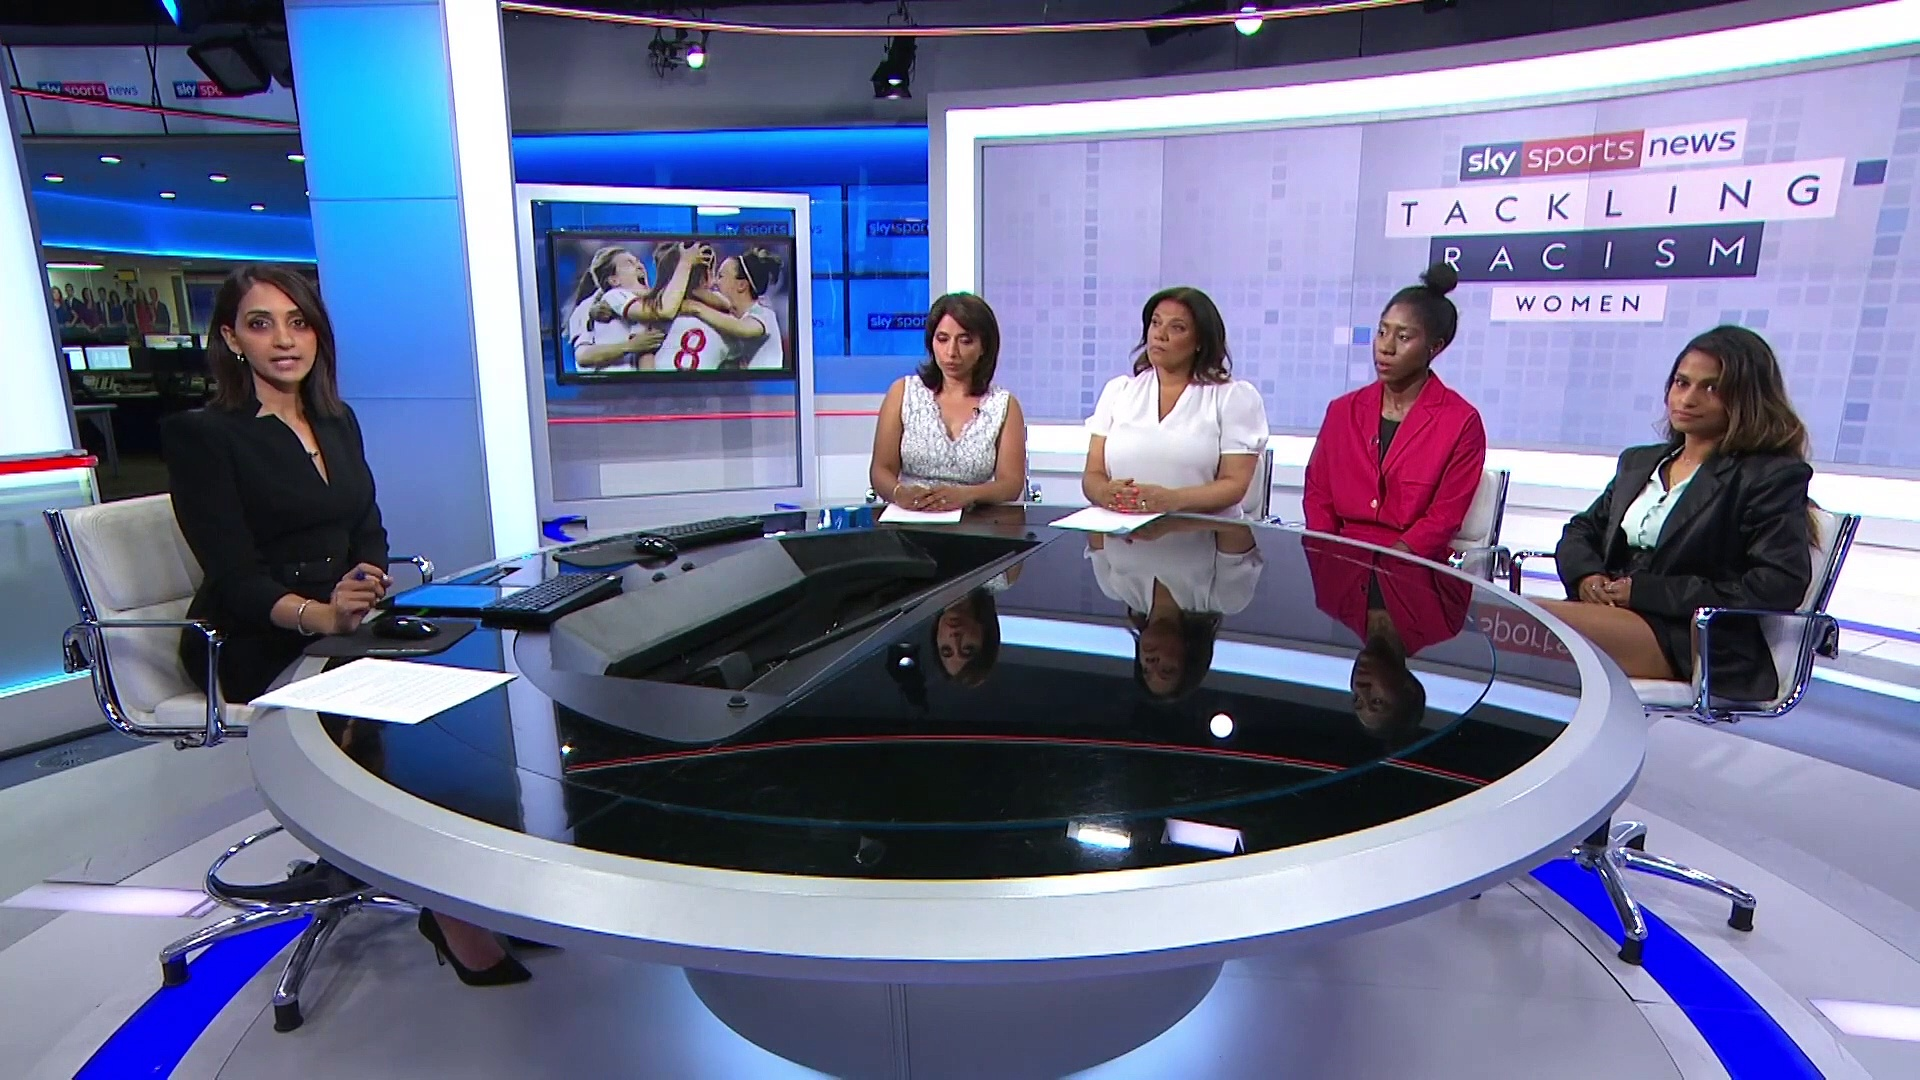 Tackling Racism | Women | Sky Sports News